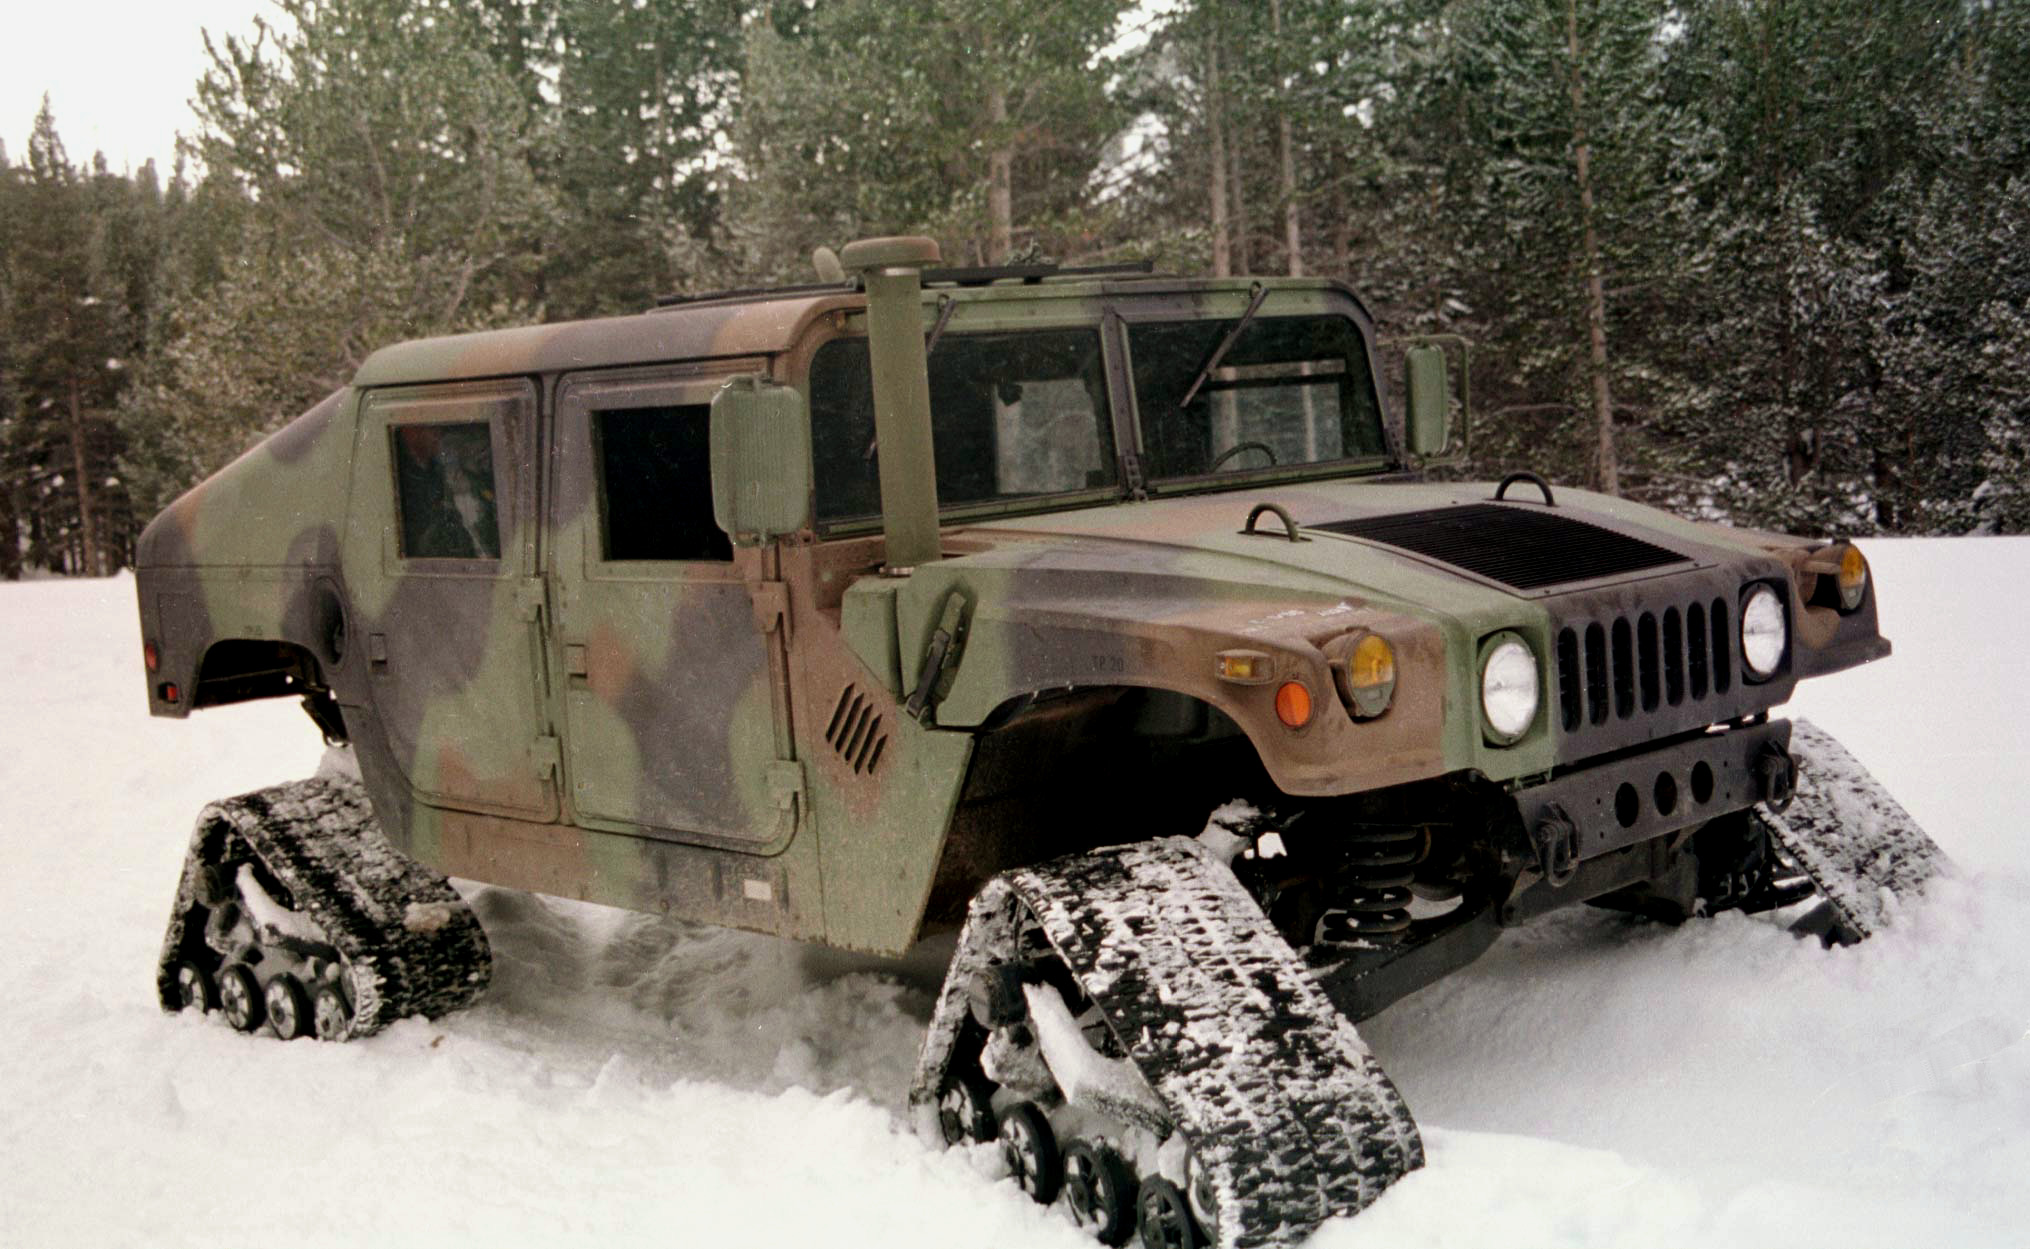 http://upload.wikimedia.org/wikipedia/commons/e/eb/Humvee_equipped_with_four_snow_treads.jpg